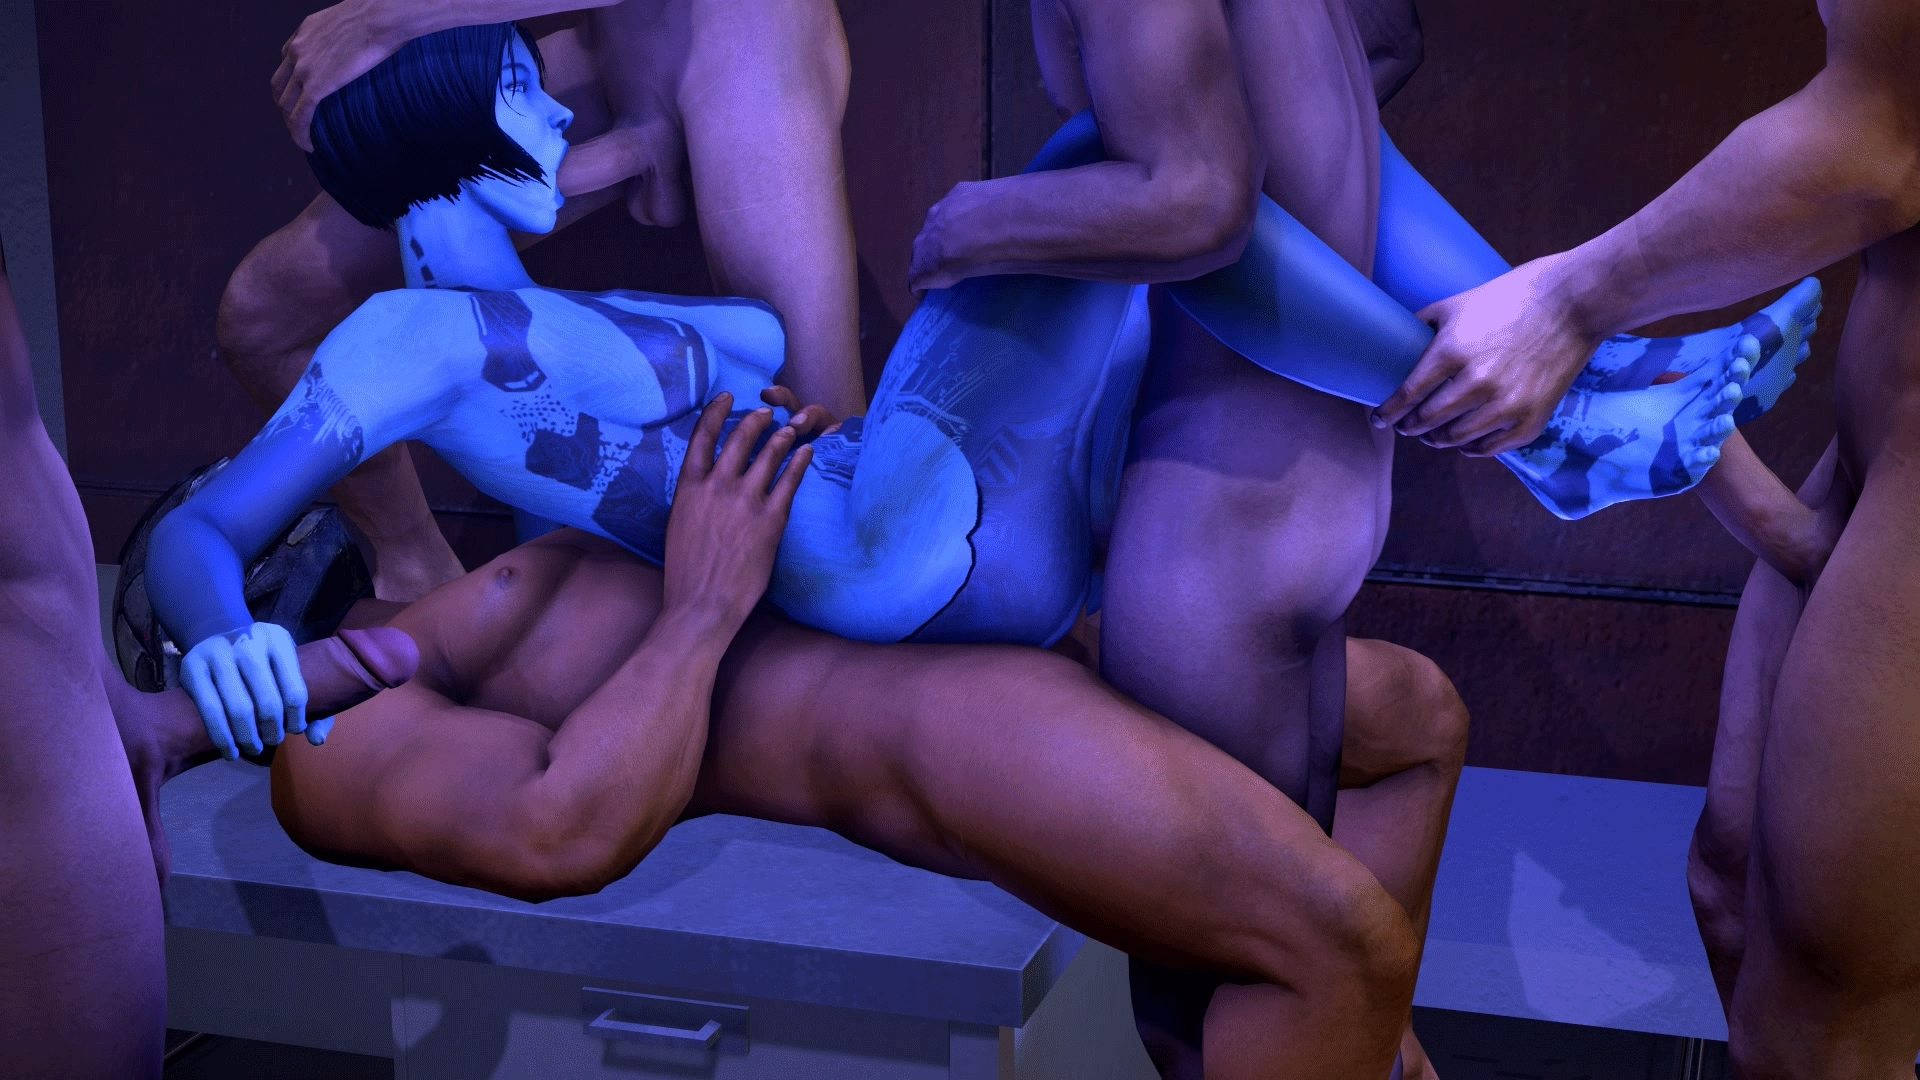 Halo animated xxx porn naked movies